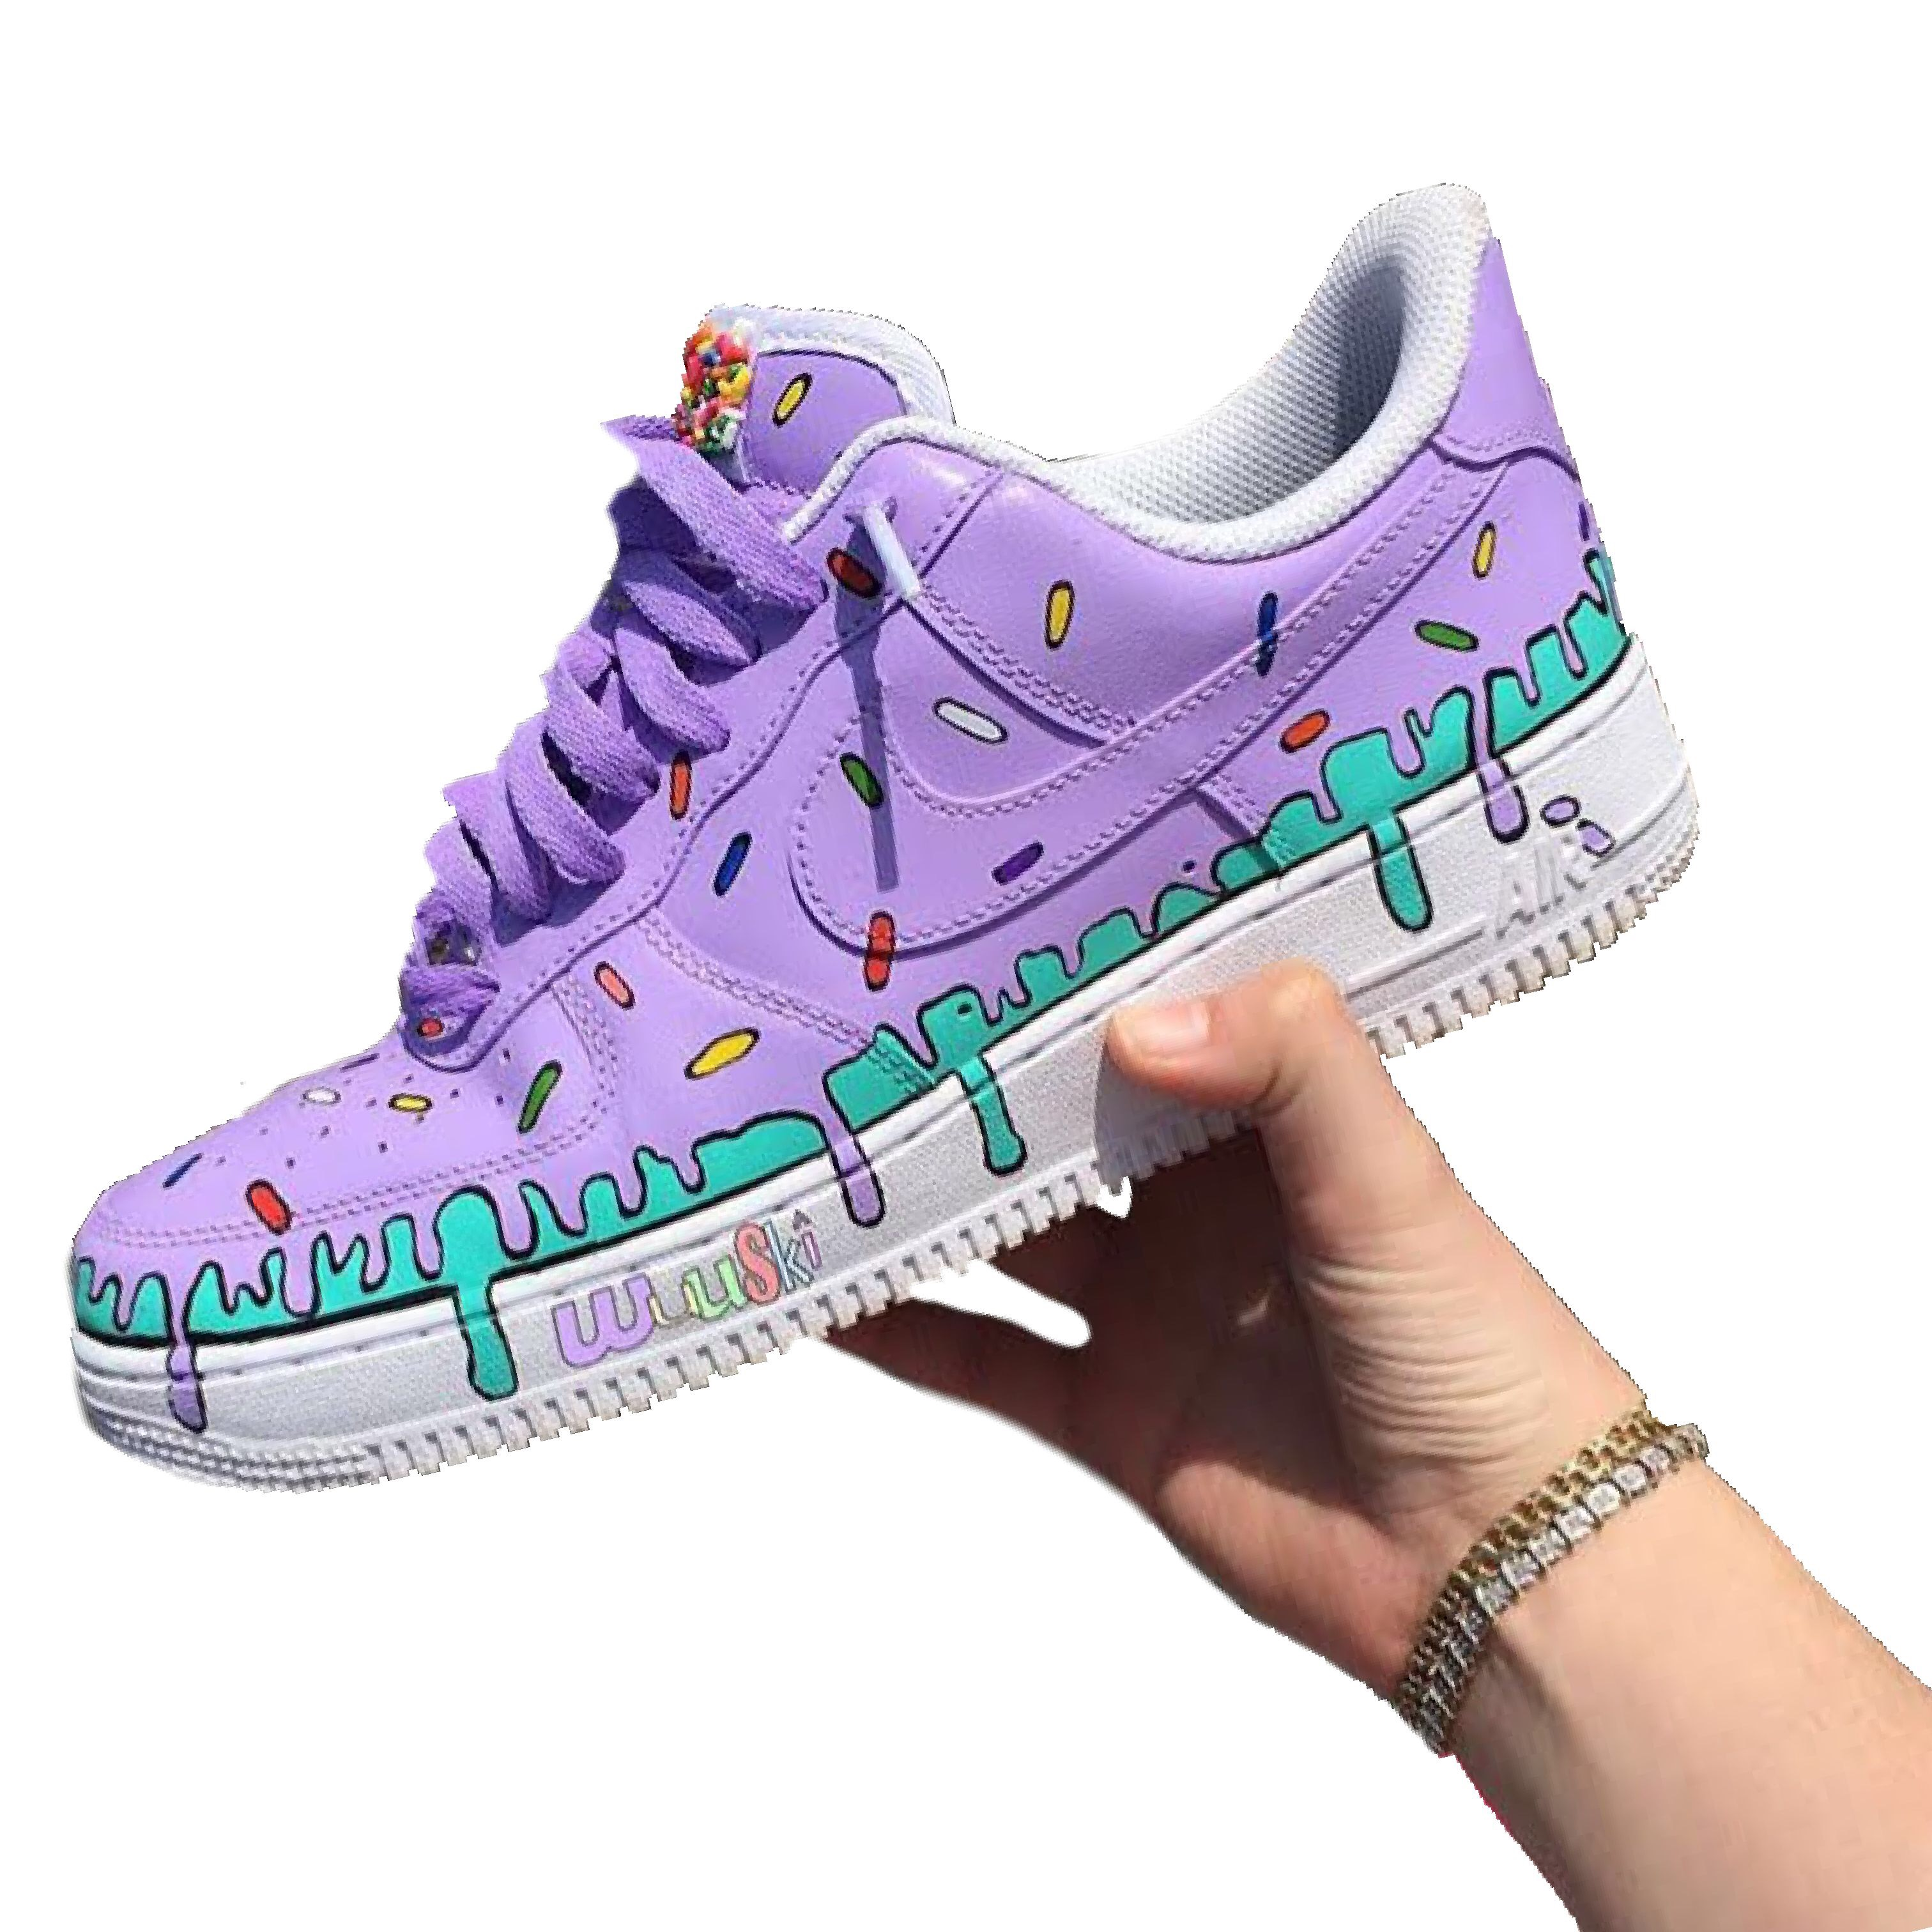 Donuts Air Force 1 | THE CUSTOM MOVEMENT